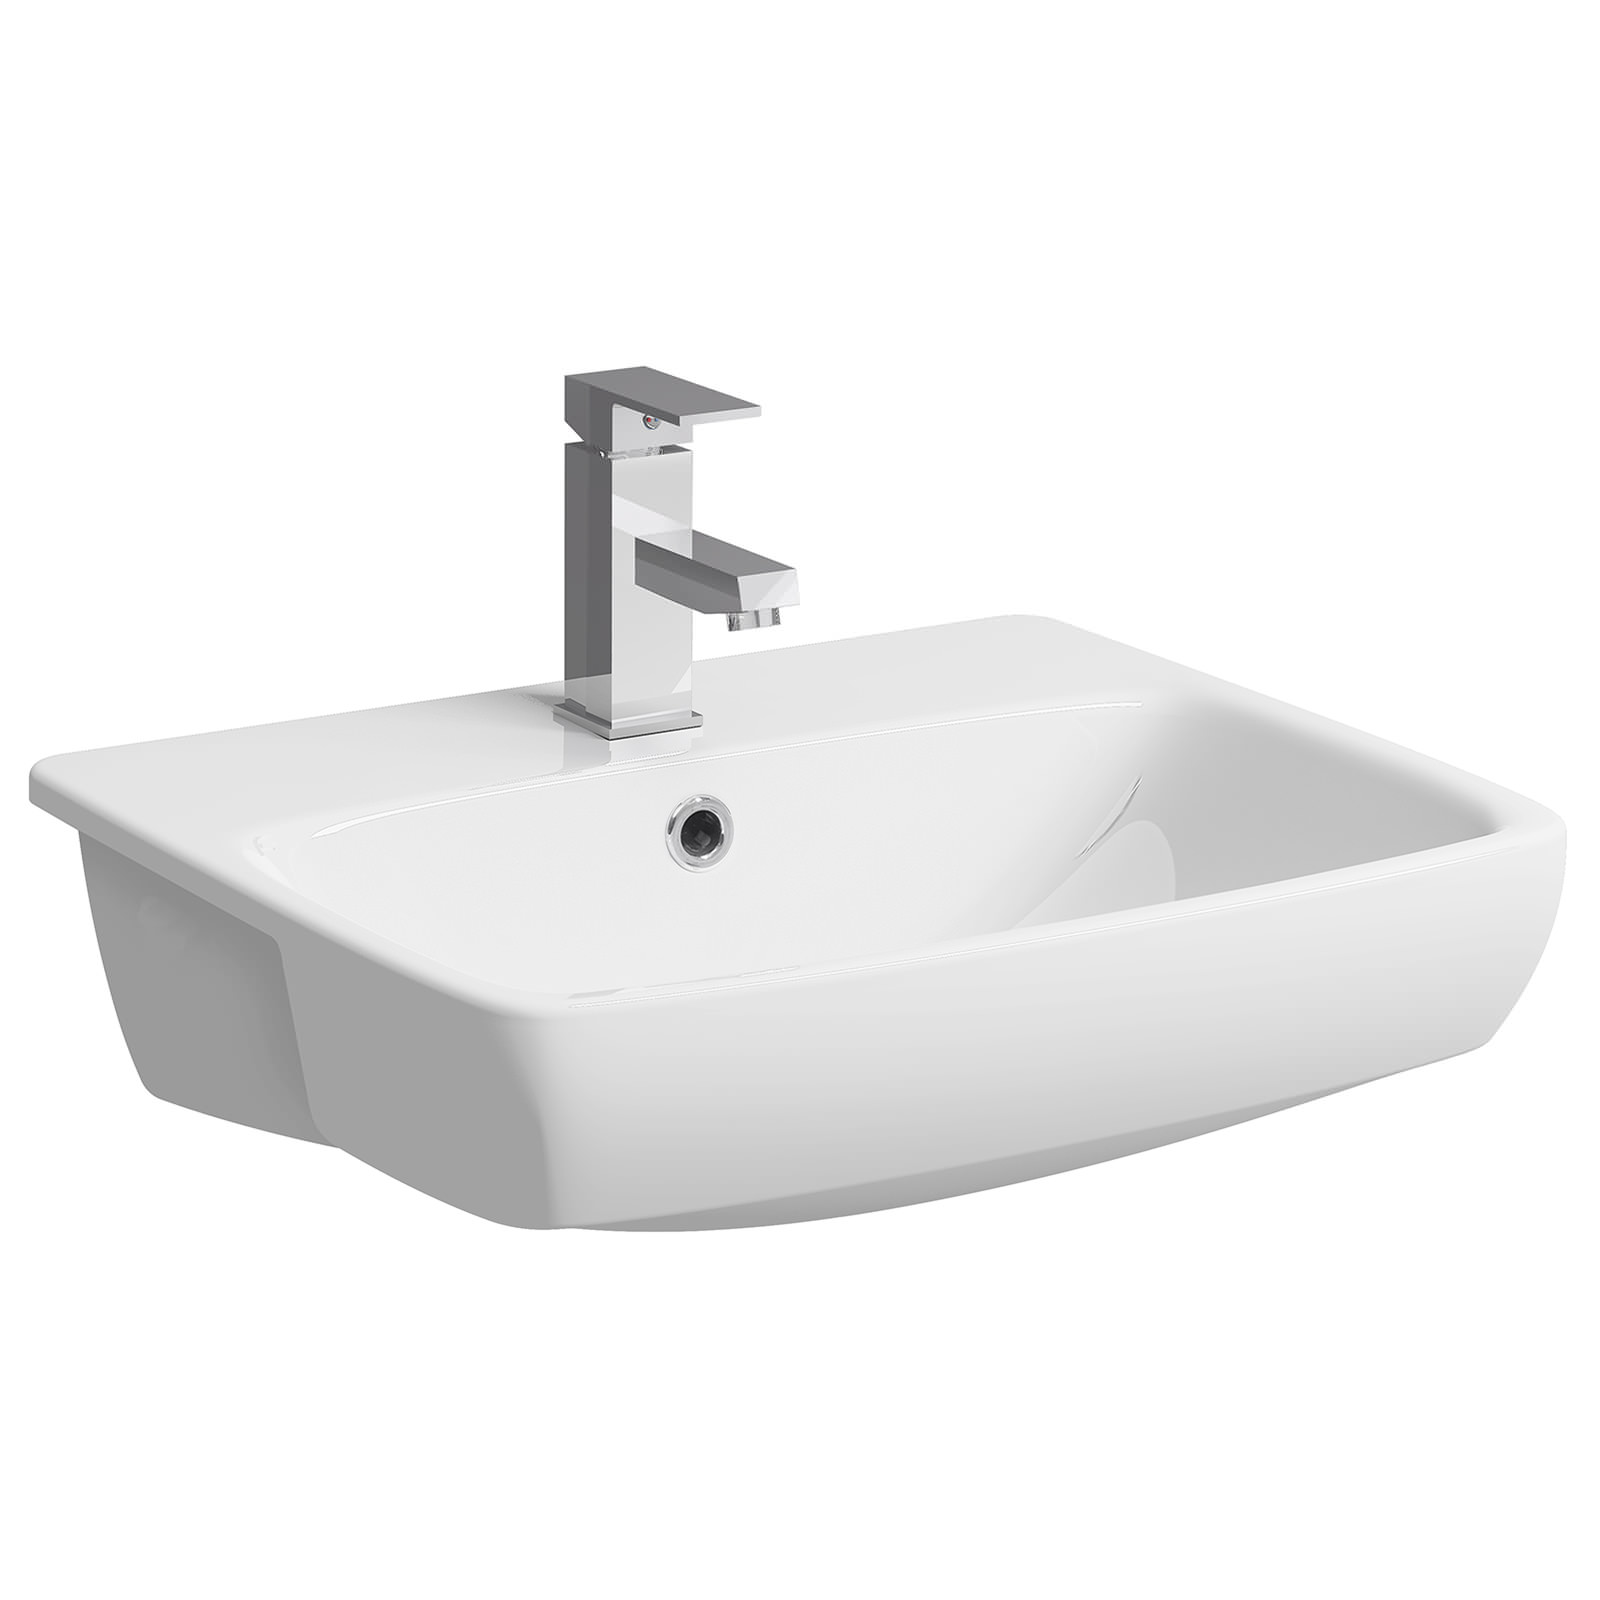 550mm 1 Tap Hole White 55cm Ideal Standard Concept Sphere Semi Recessed Basin